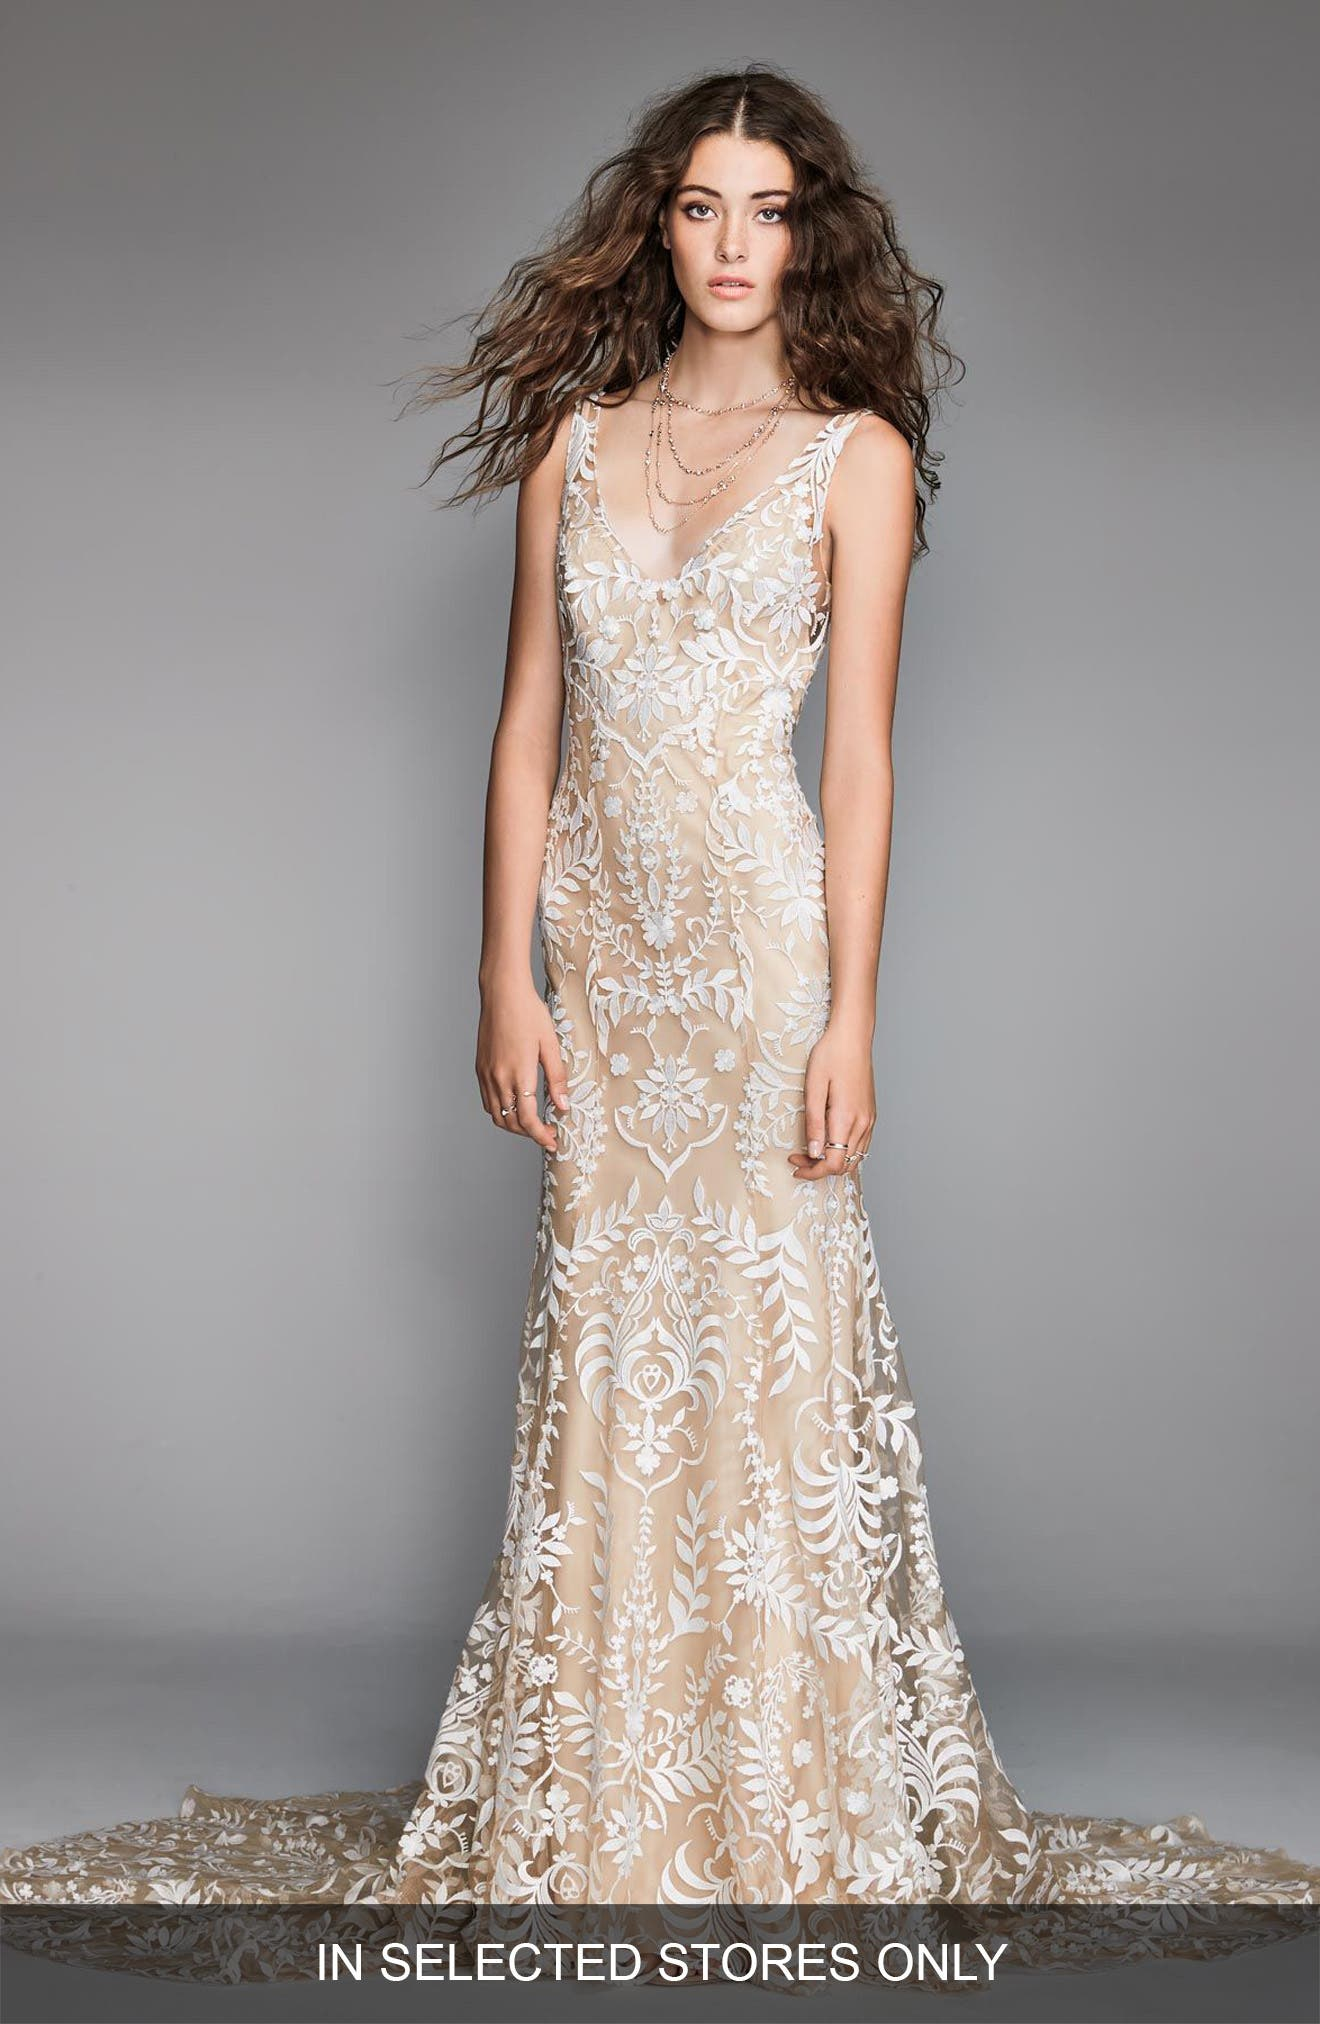 Corella Embroidered Lace & Charmeuse Mermaid Gown,                             Main thumbnail 1, color,                             Ivory/ Nude